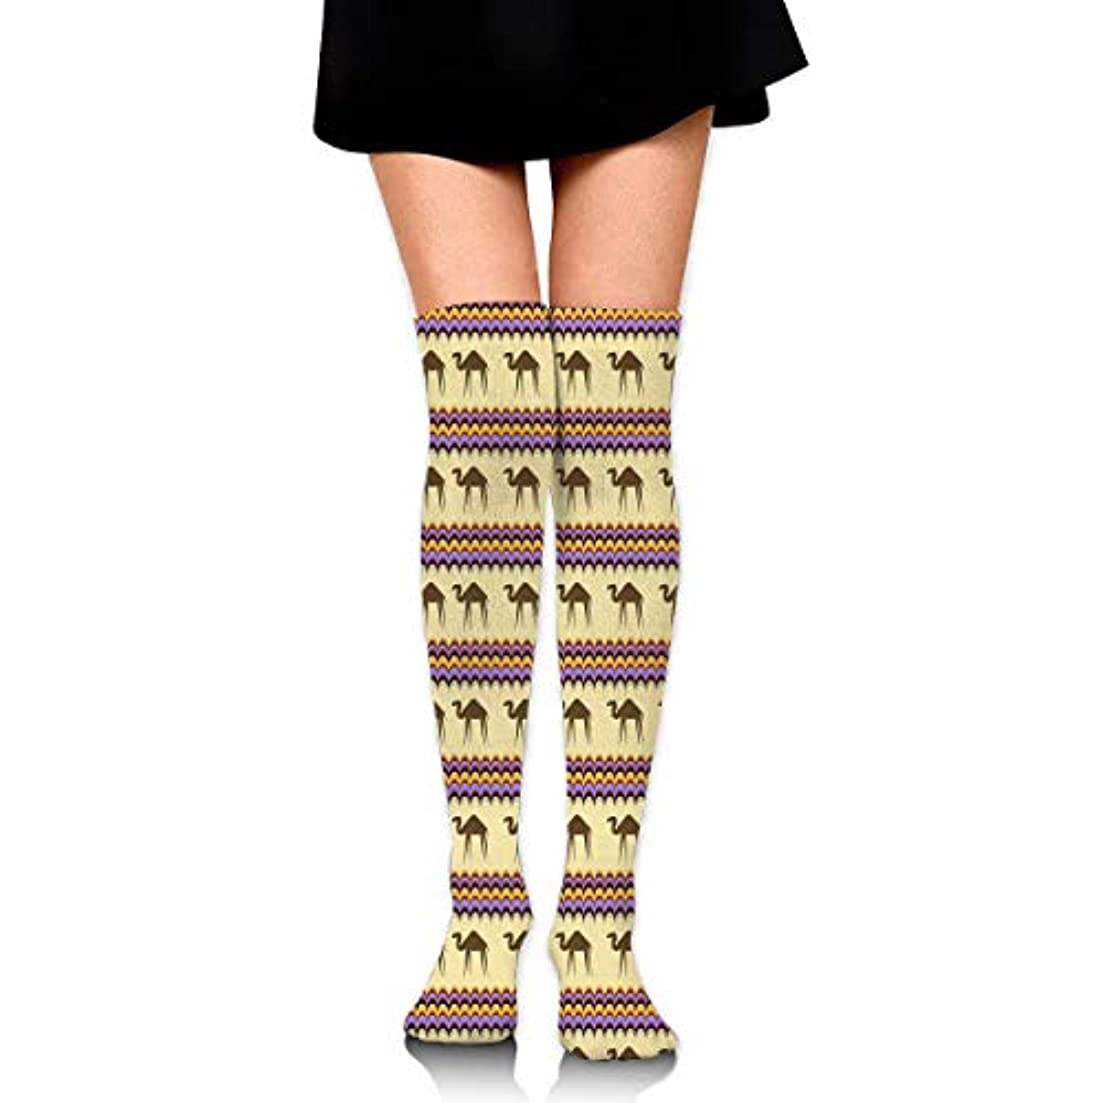 司法四回検査MKLOS 通気性 圧縮ソックス Breathable Thigh High Socks Over Exotic Psychedelic Print Compression High Tube Thigh Boot Stockings...